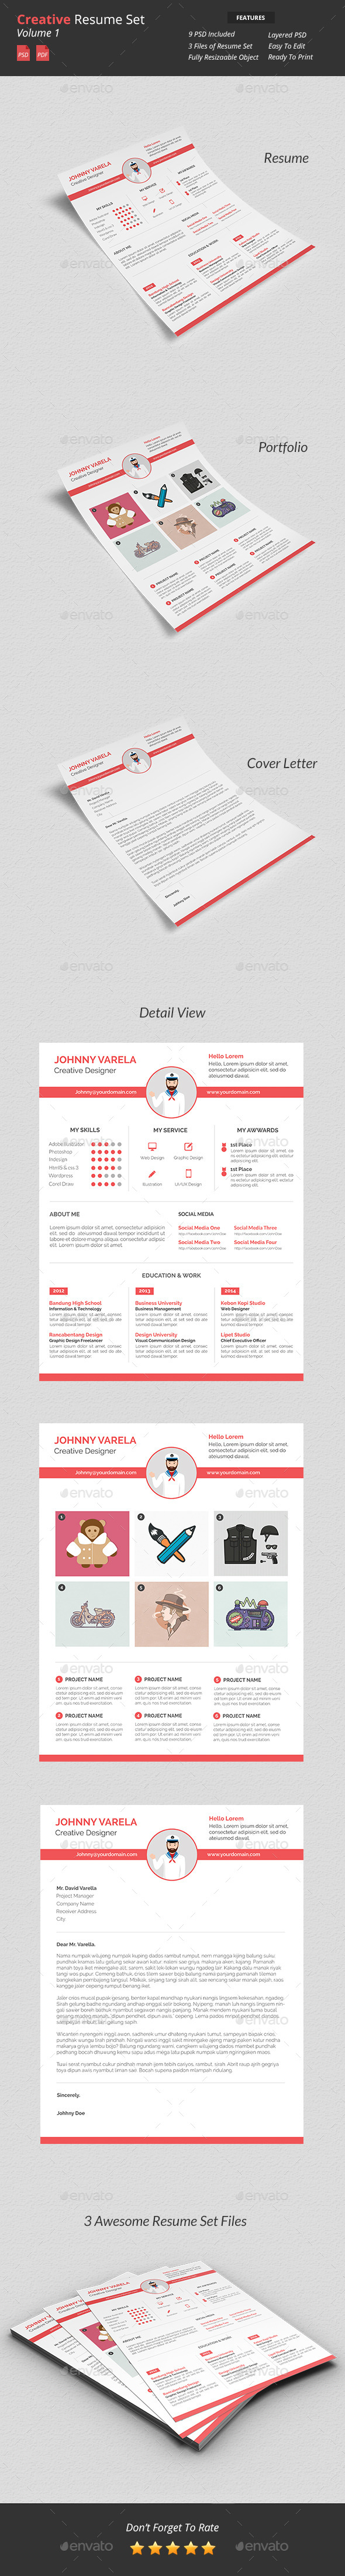 GraphicRiver Creative Resume Set v1 9523780